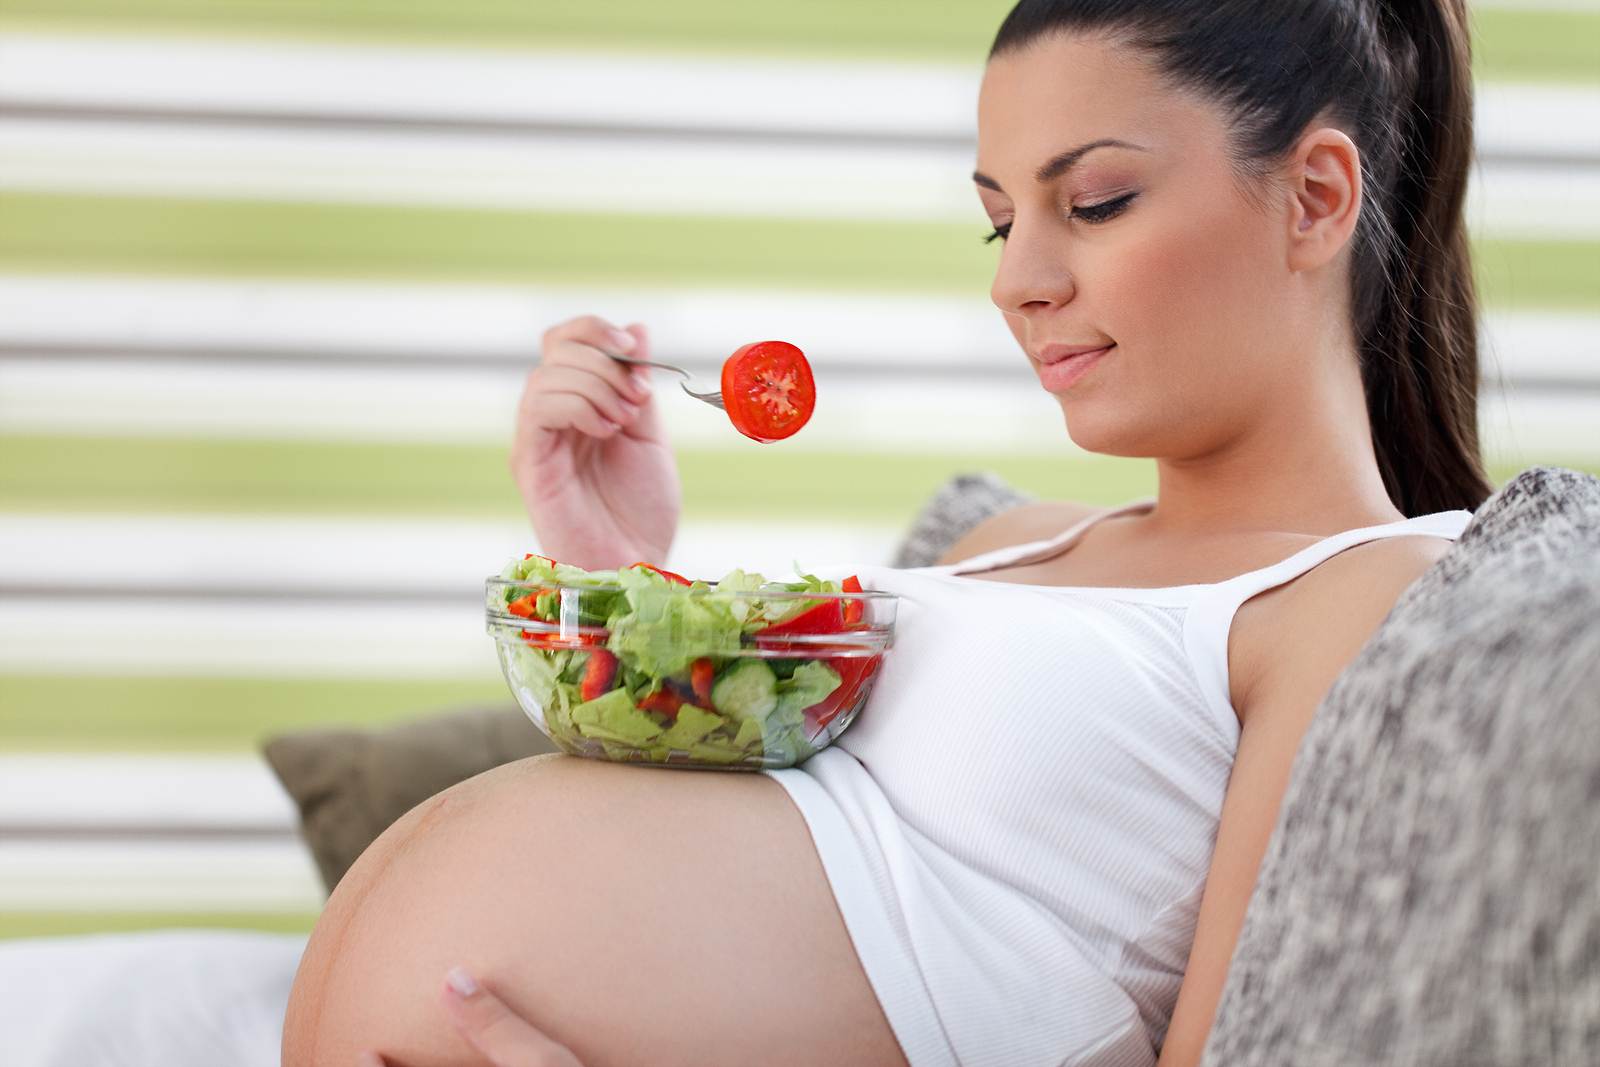 Pregnancy Cravings? What you can eat or should avoid altogether